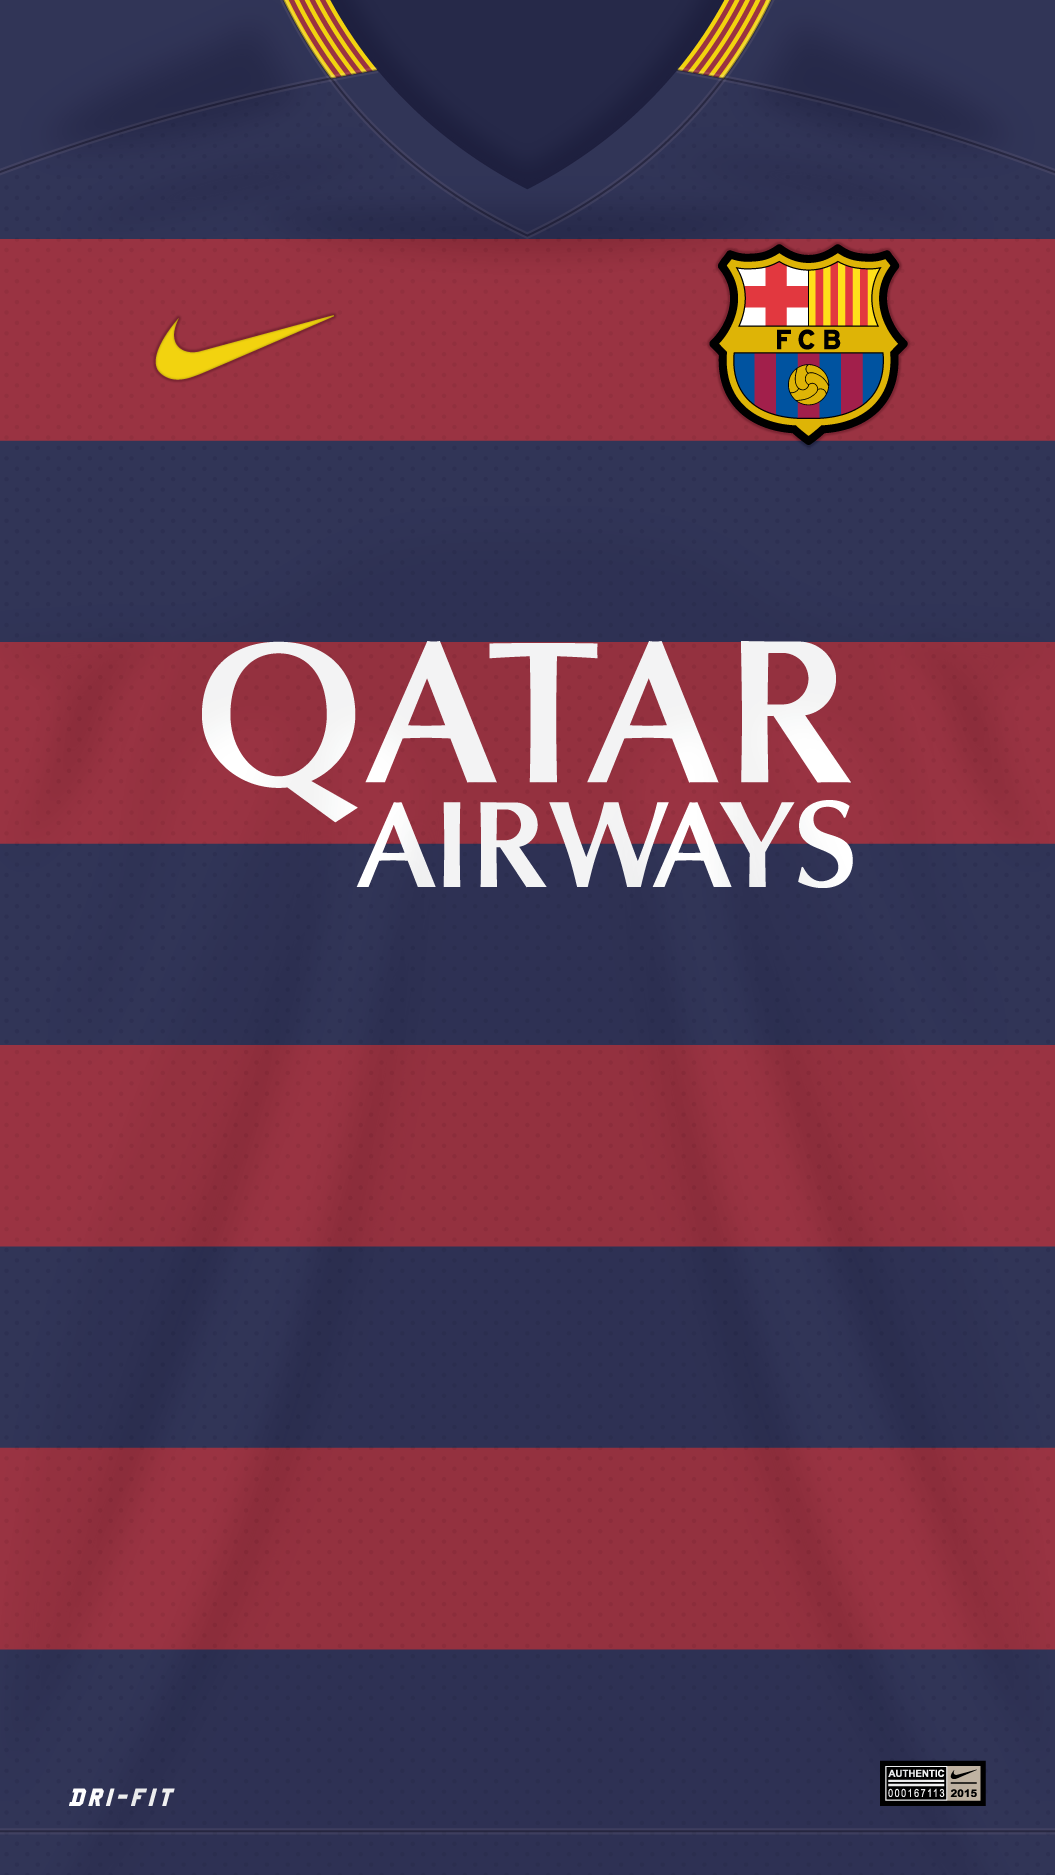 Image for Fc Barcelona Iphone Wallpaper For Android  meoat ... f92921d80561b